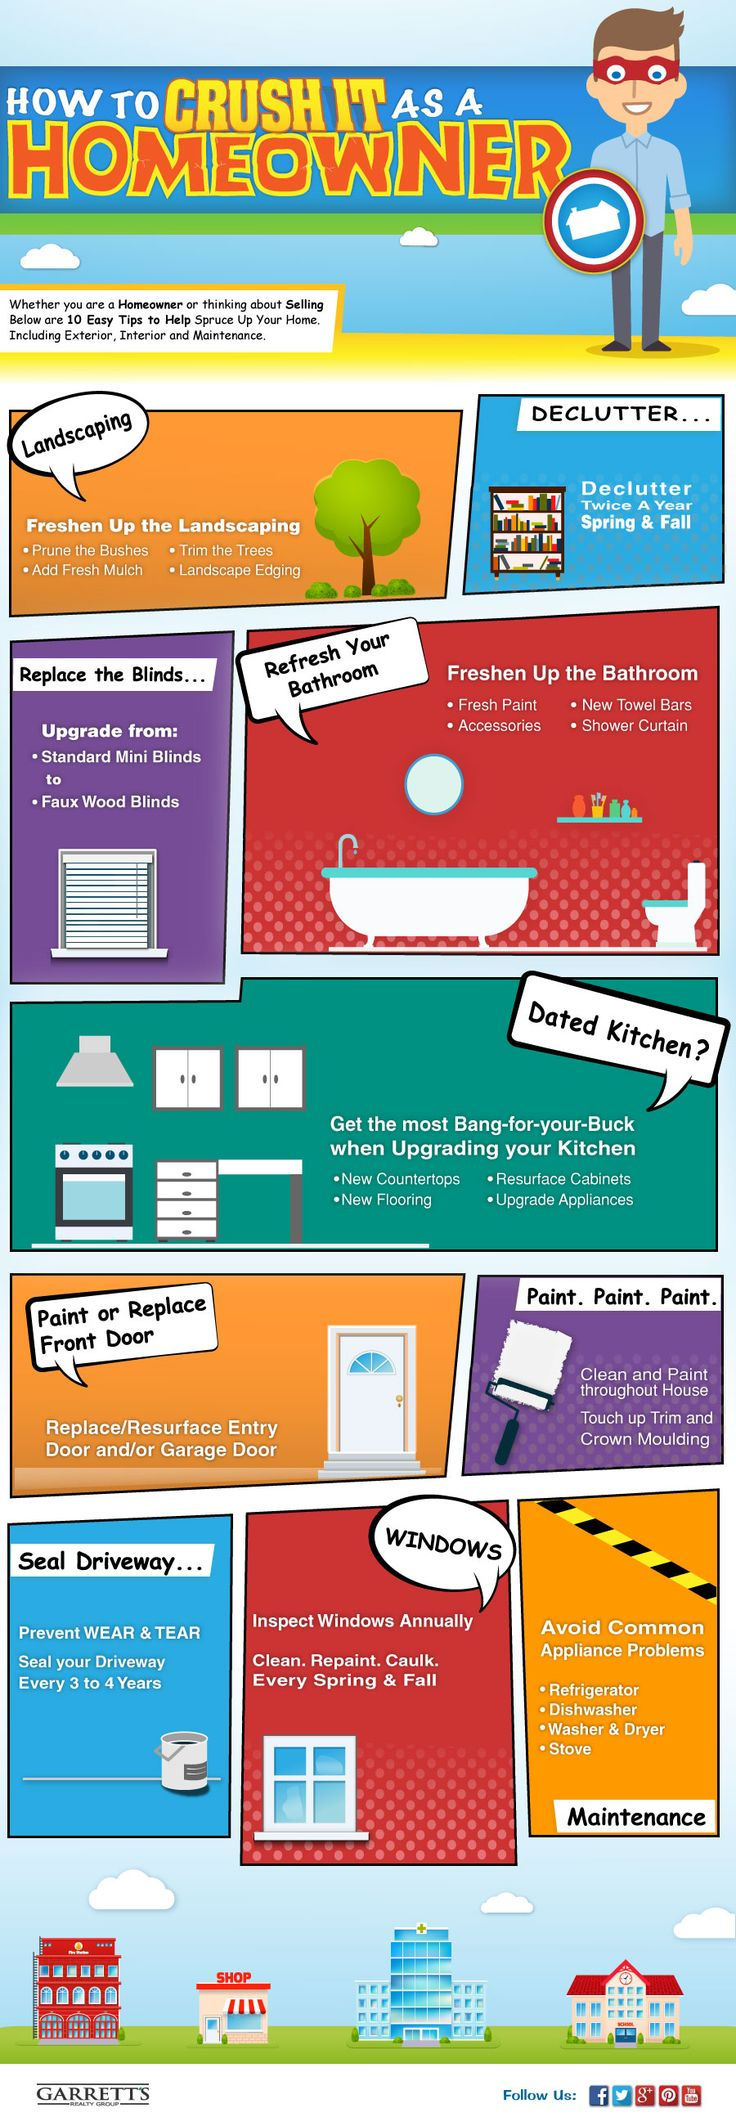 Top 10 tips for your Home: How to Crush it as a Homeowner #ThisGirlSellsHouses #realestate